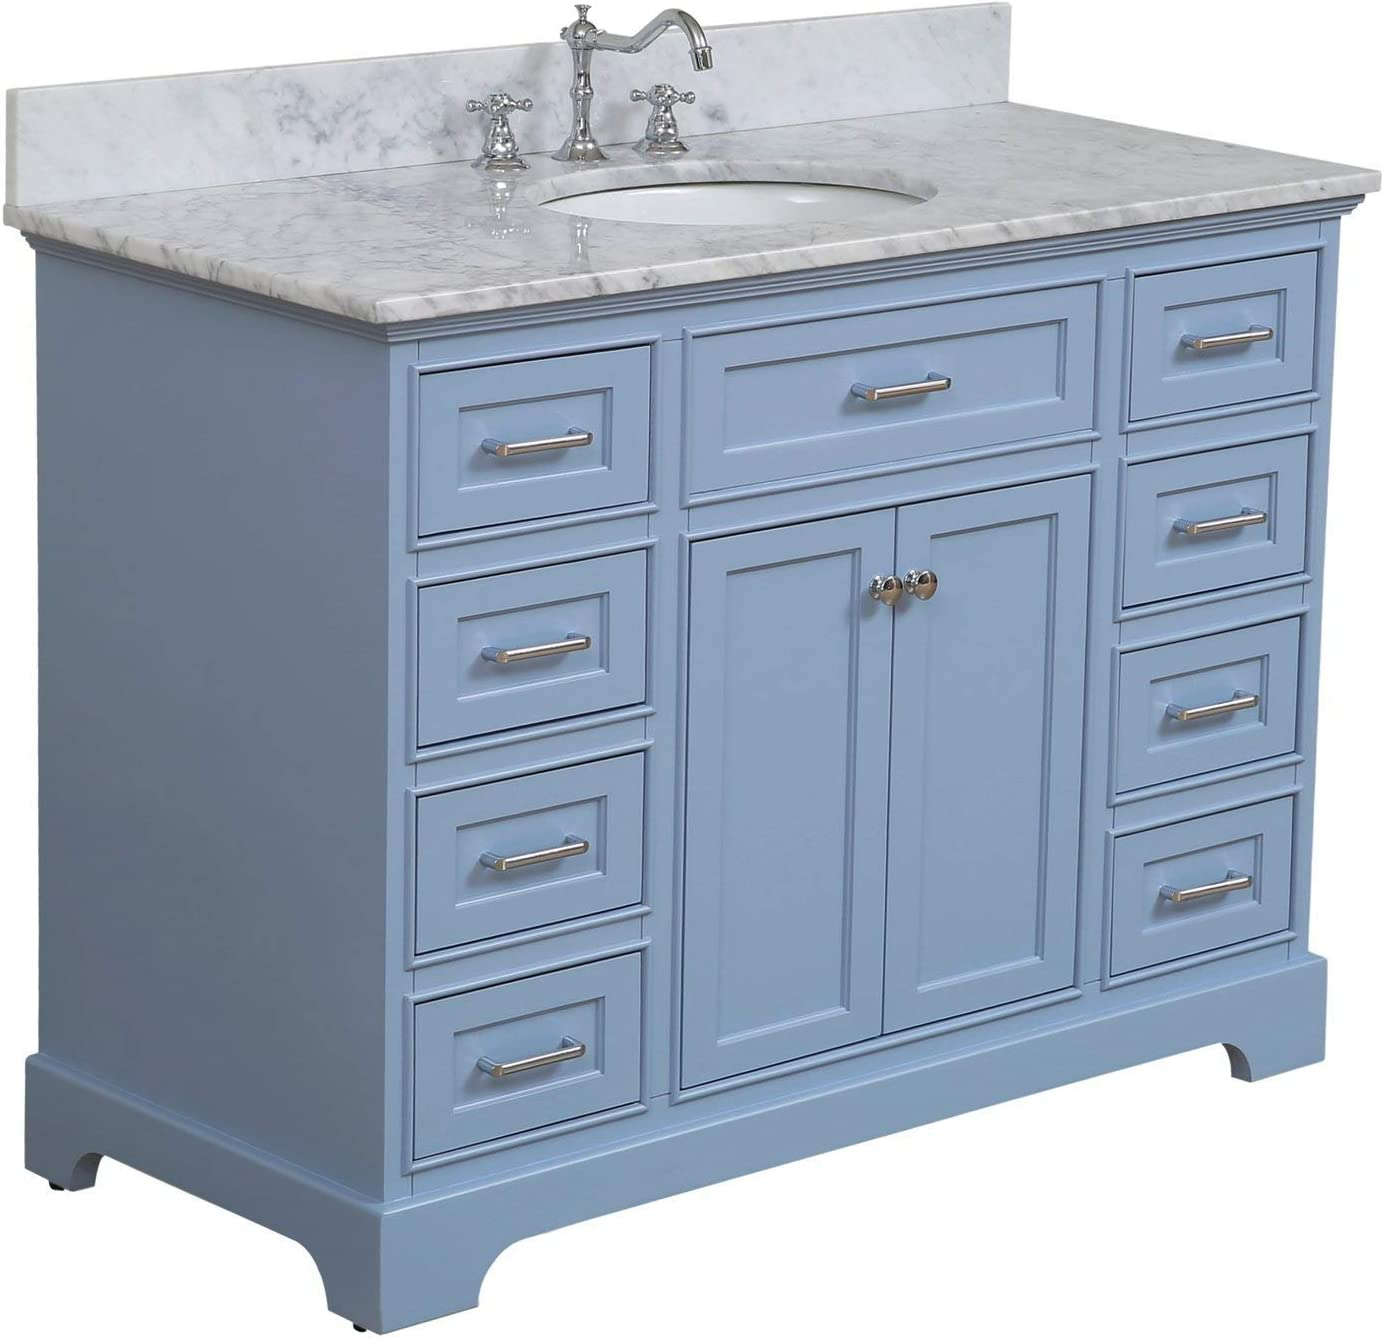 Amazon Com Aria 48 Inch Bathroom Vanity Carrara Powder Blue Includes Powder Blue Cabinet With Authentic Italian Carrara Marble Countertop And White Ceramic Sink Kitchen Dining